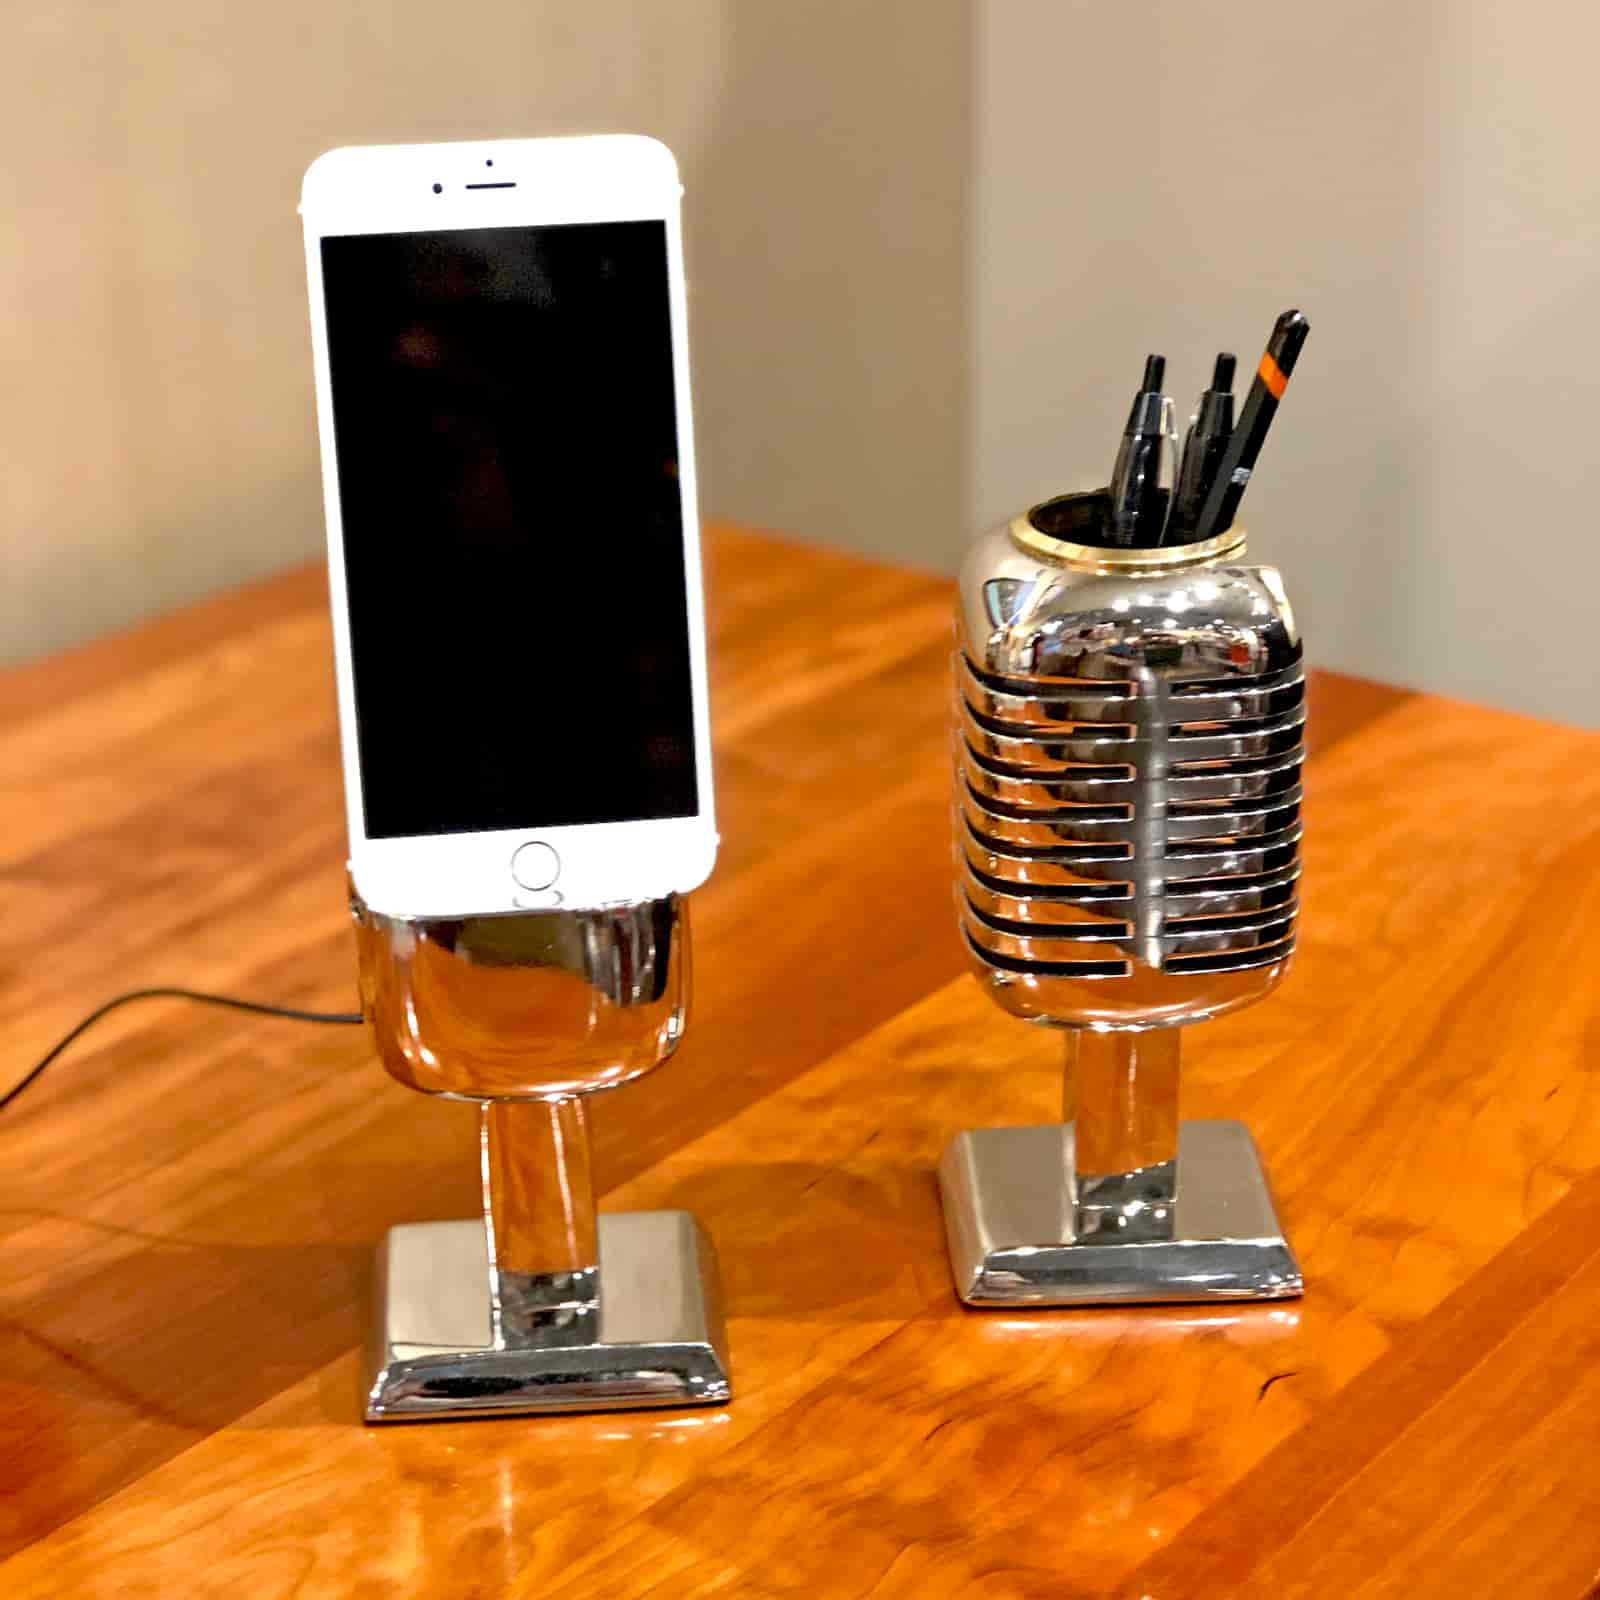 Rosie's Workshop Microphone Desk Decor. Chrome pencil holder and phone stand are based on the Shure Brothers 55D microphone made famous by a young Elvis Presley while on tour in 1955 – 1957.